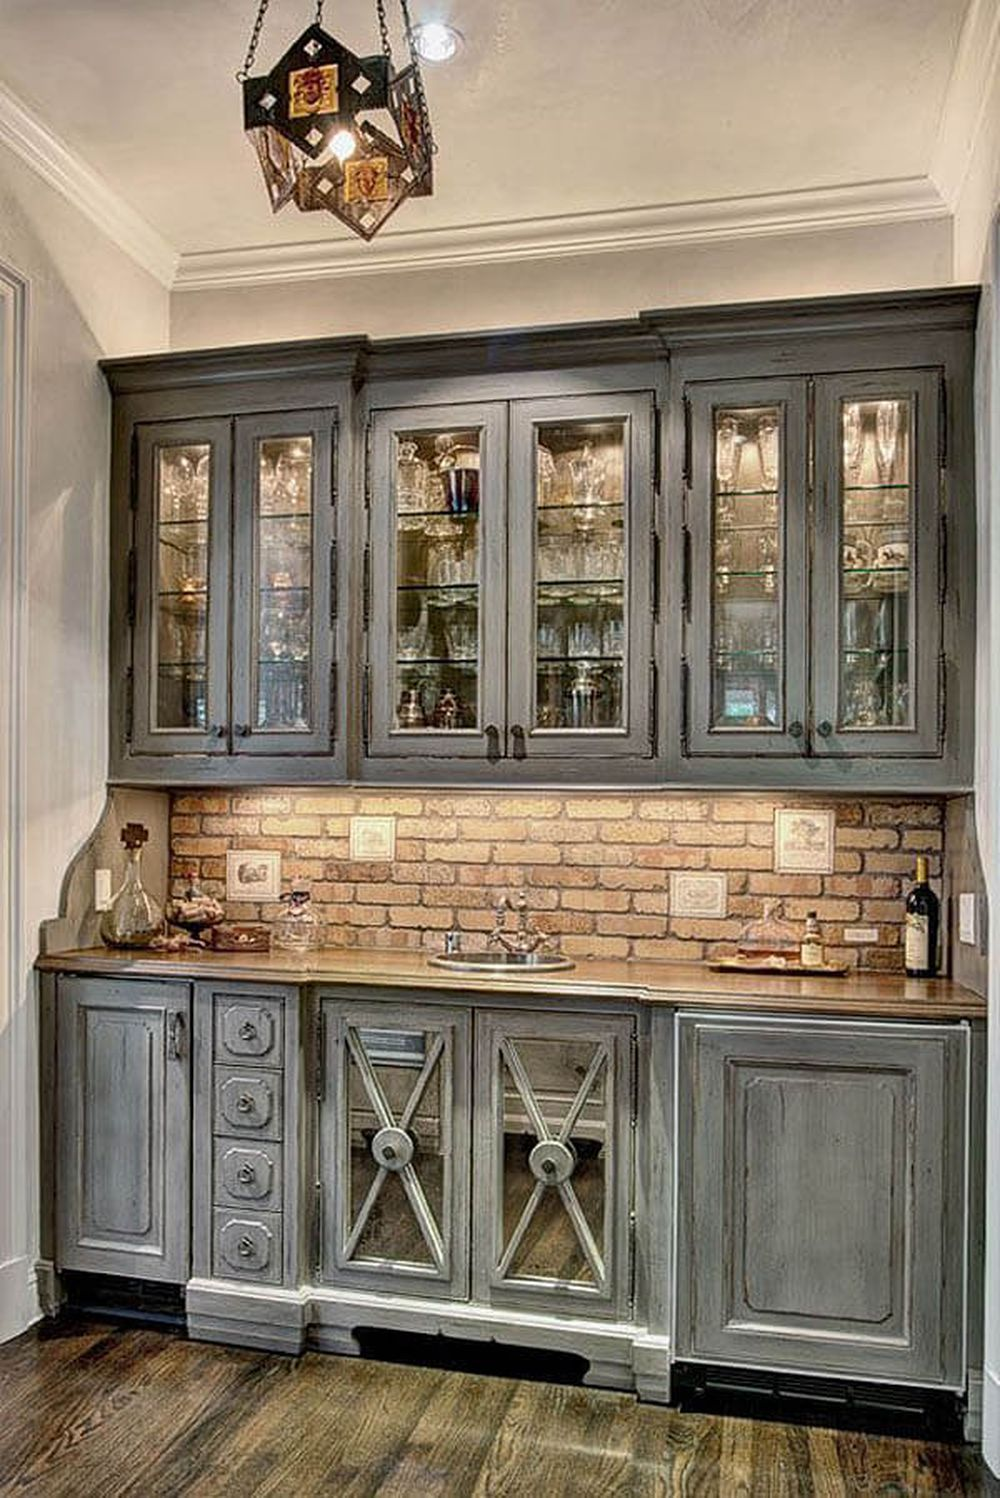 54 Beautiful Cabinets for the Rustic Kitchen | Rustic kitchen ...